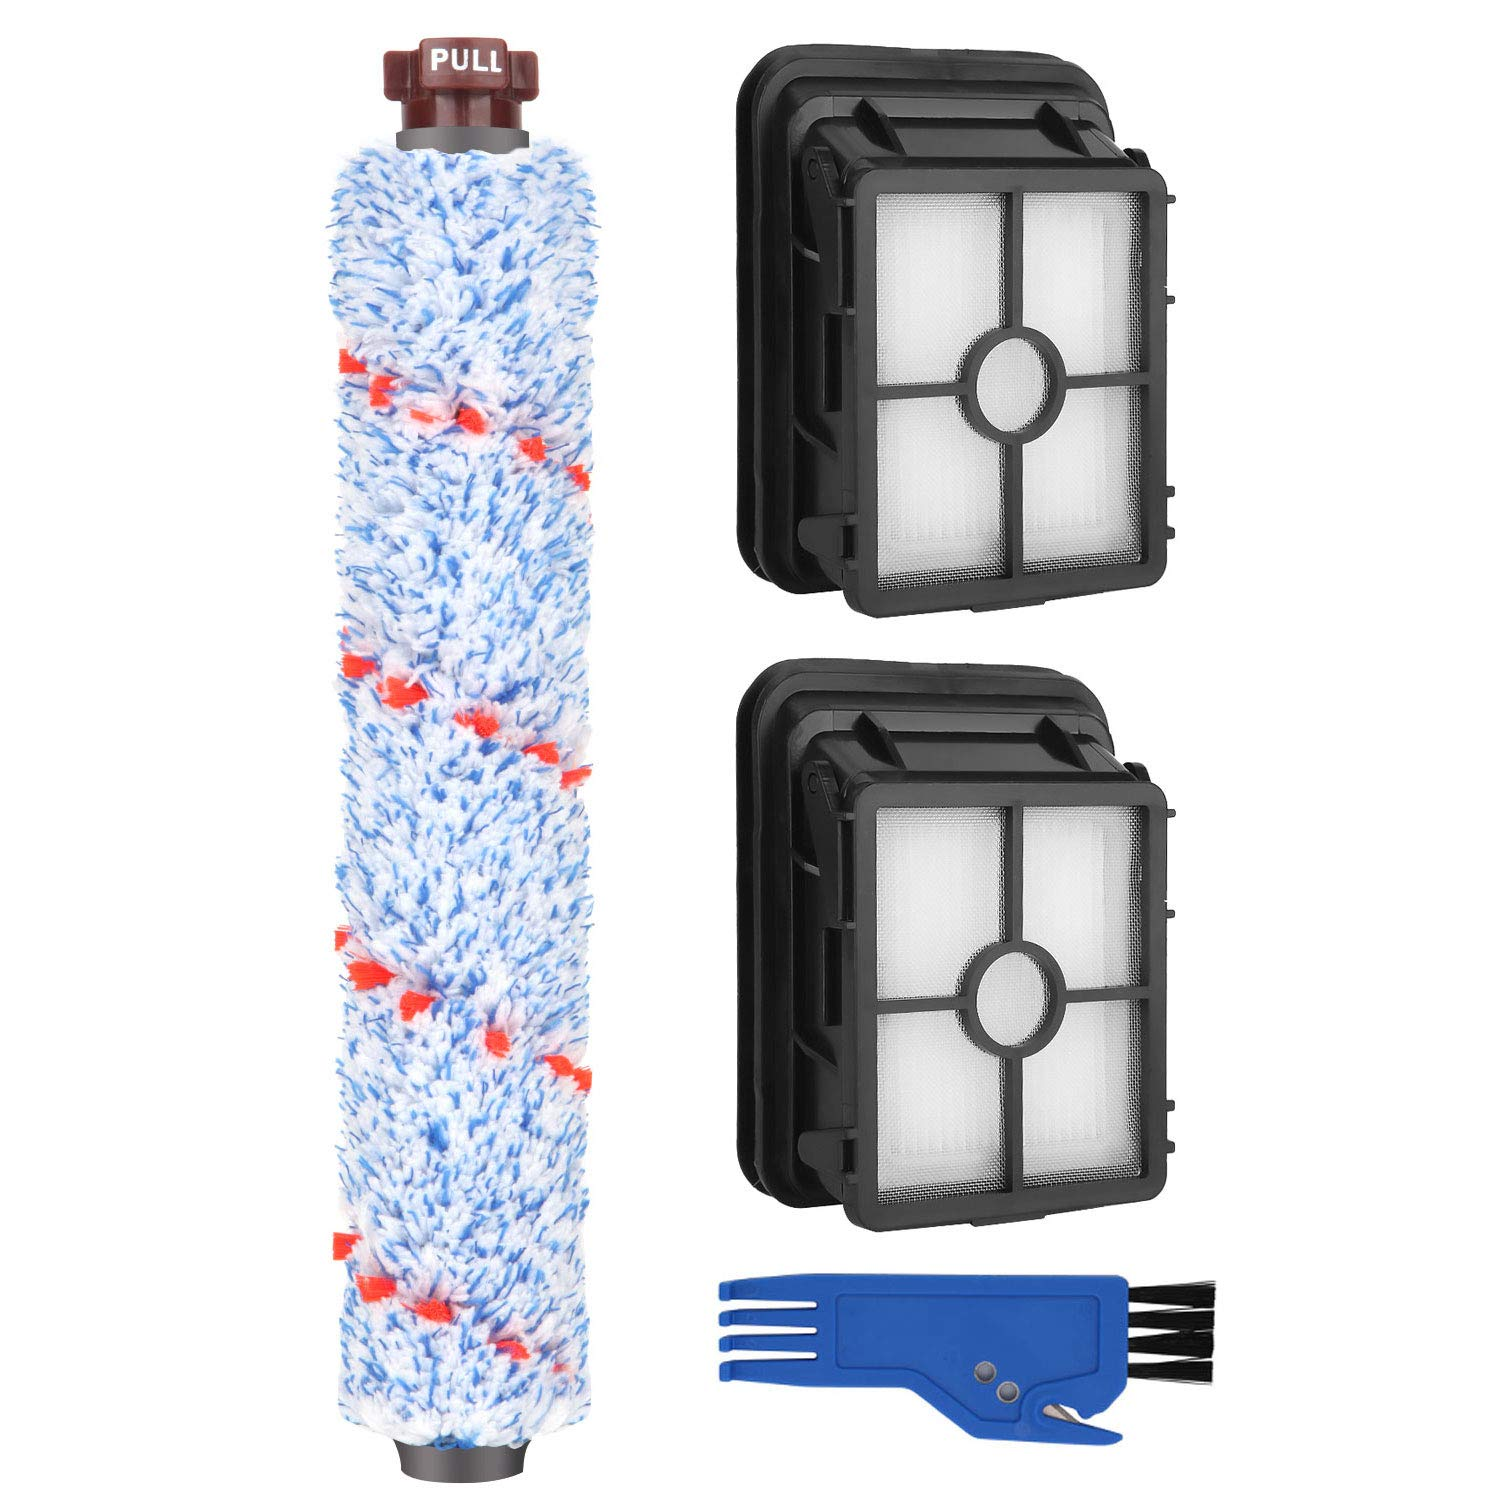 Home, Furniture & DIY 2-Pack Filter for Bissell CrossWave 1785 Series All-in-One Multi-Surface Wet Dry